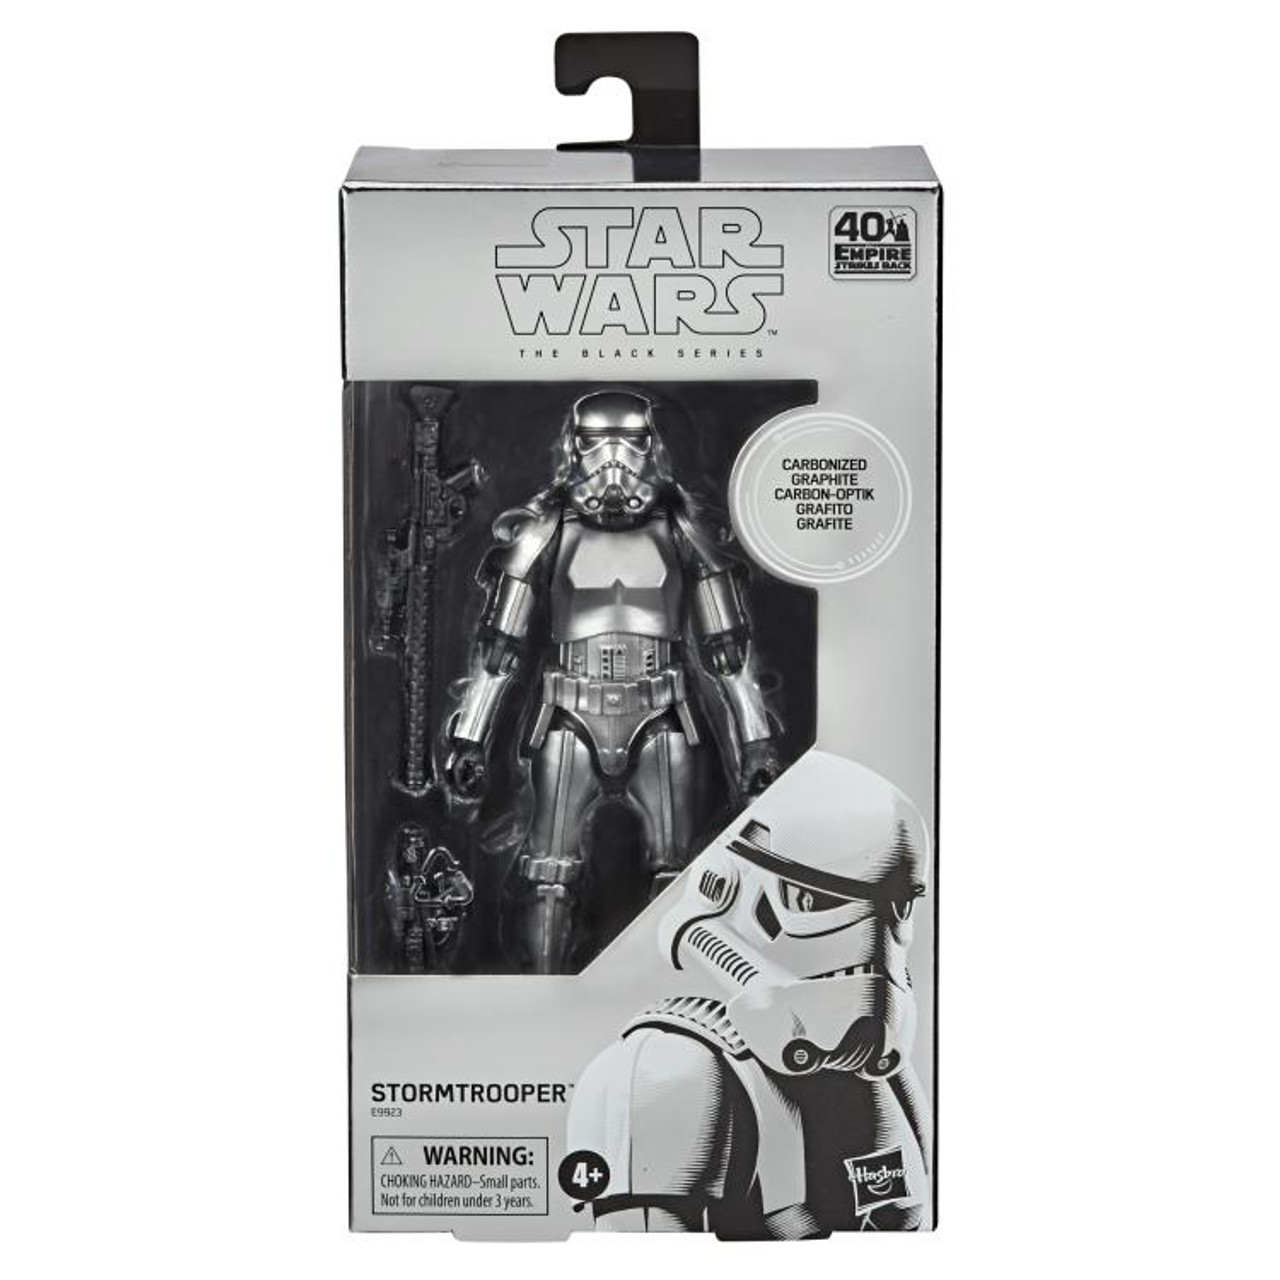 Star Wars ~ The Black Series ~ Carbonized Stormtrooper 6-Inch Action Figure Box